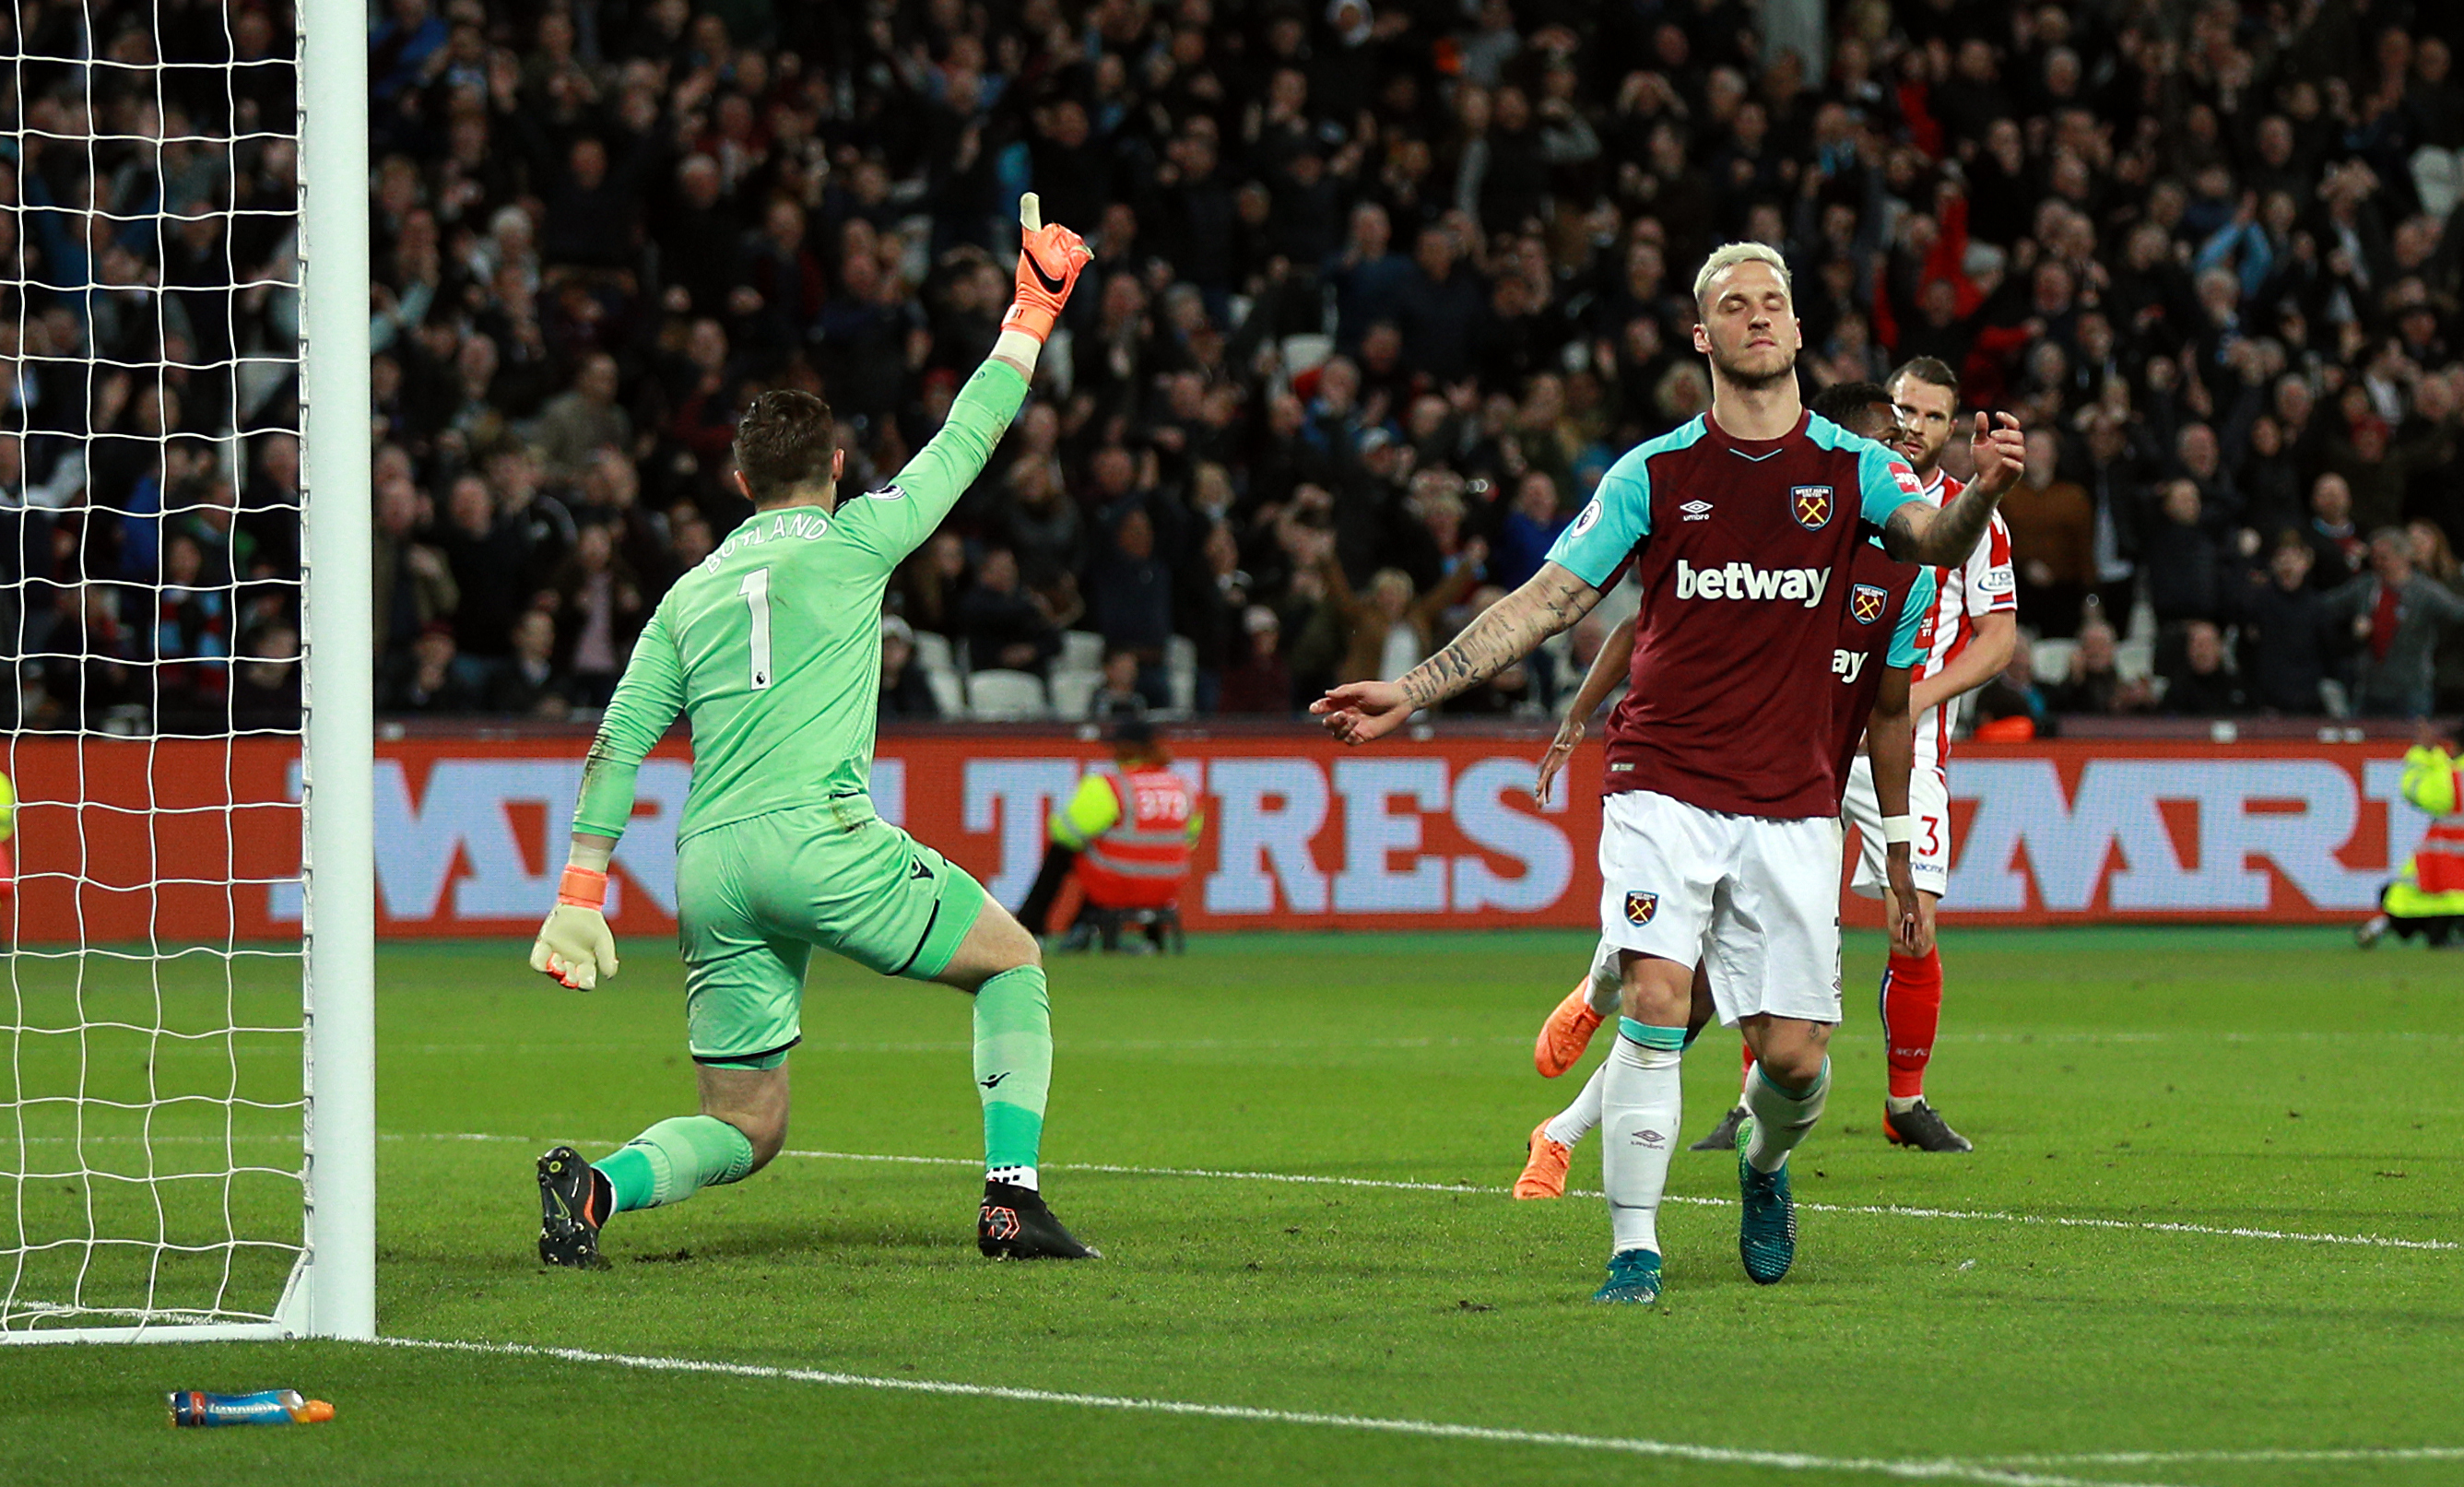 West Ham United's Marko Arnautovic has a goal disallowed